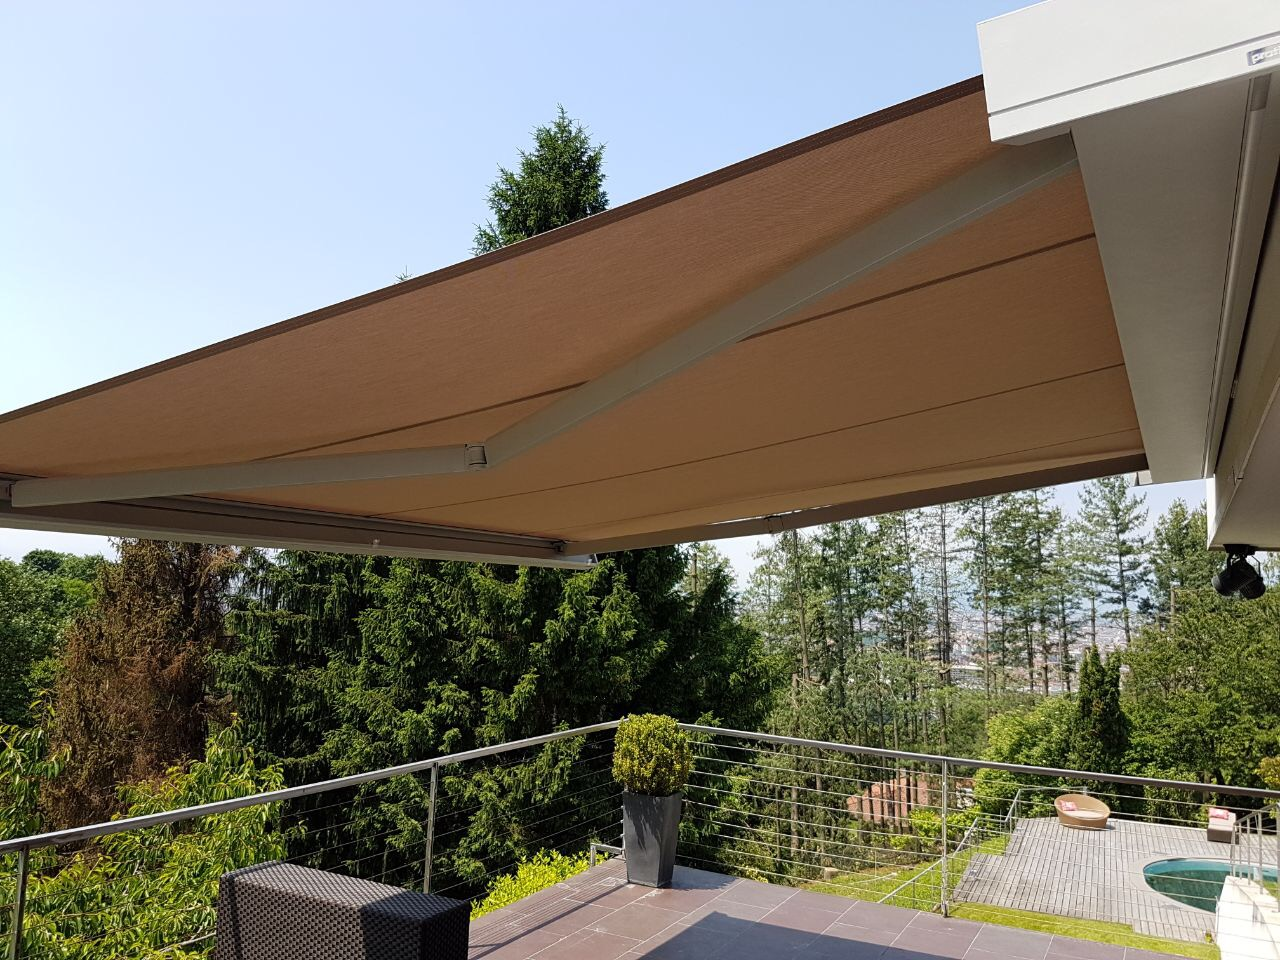 tenda-cassonata-a-righe